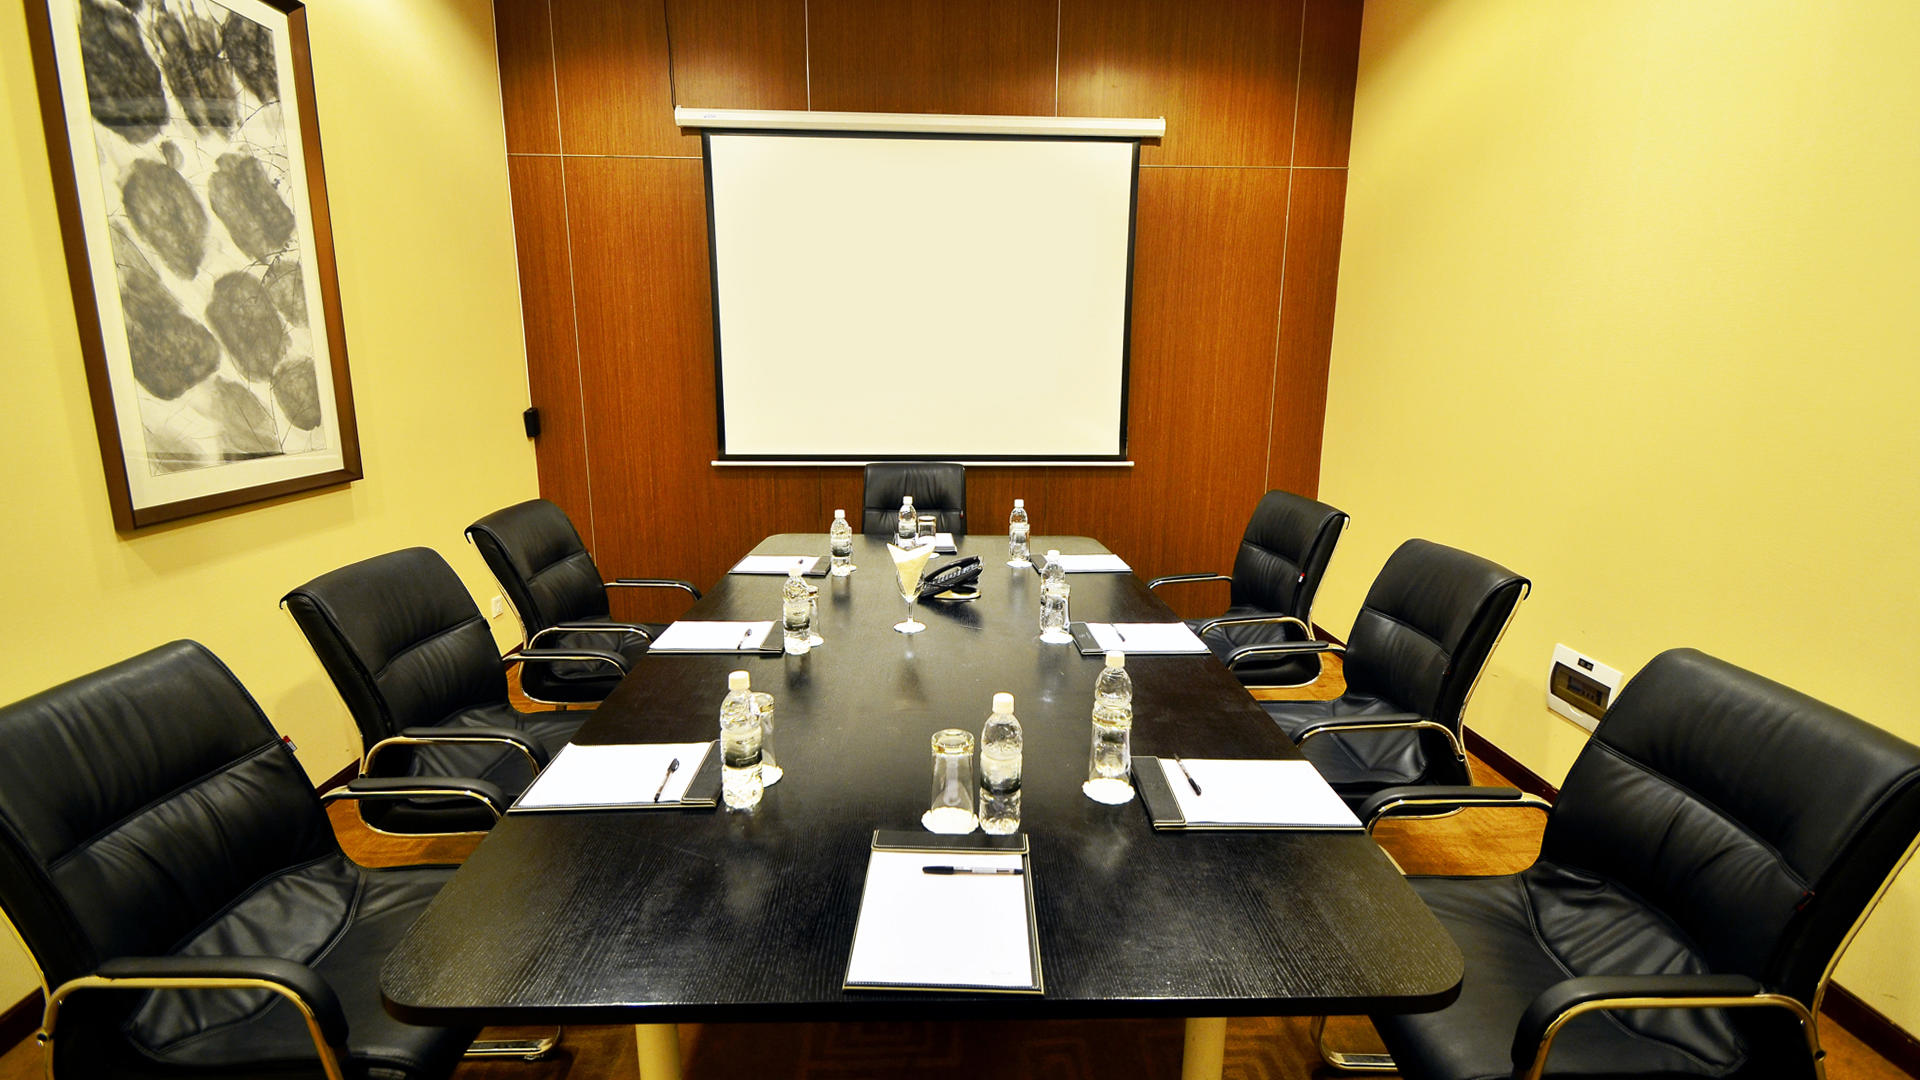 Meeting room at Fleuve Congo Hotel Hotel in Kinshasa